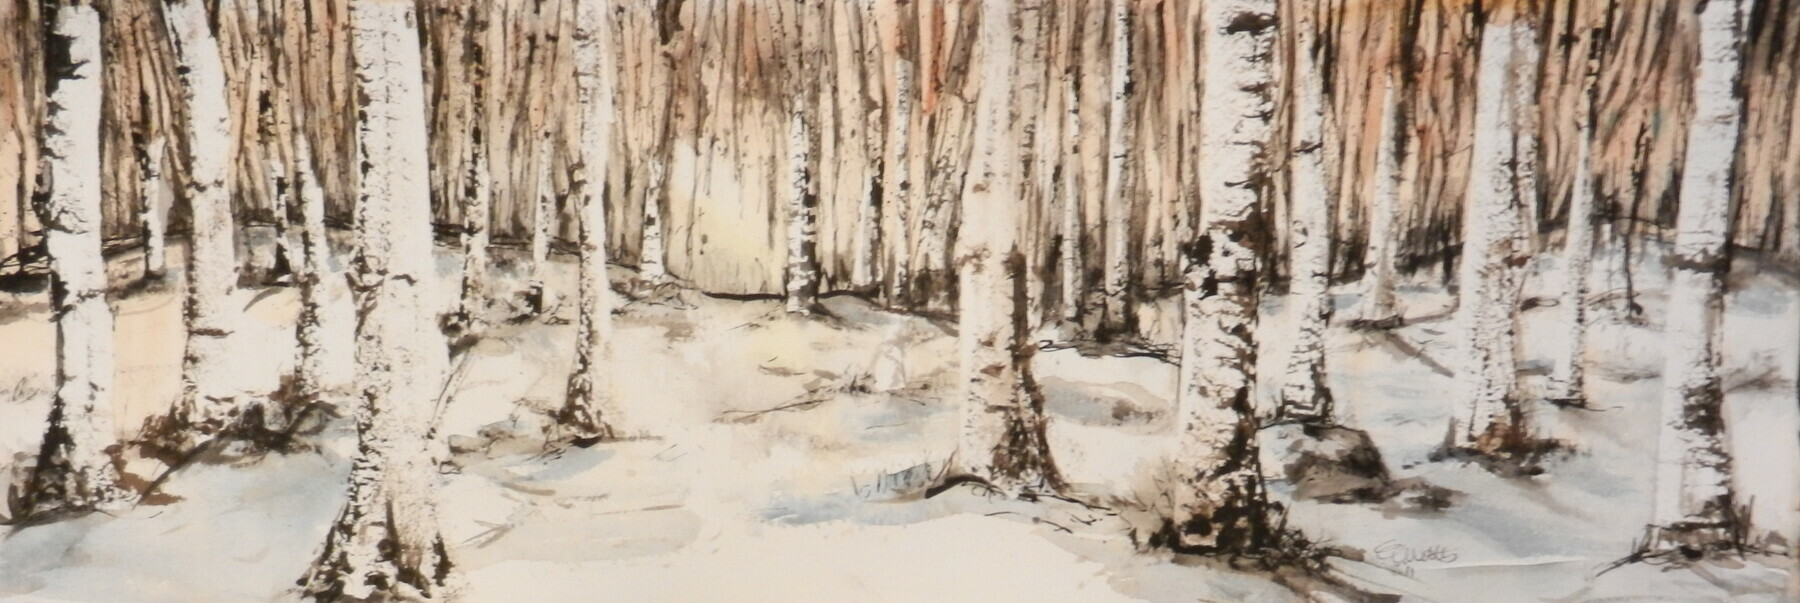 Birch Tree Paintings On Canvas Birch trees--winter - elaine